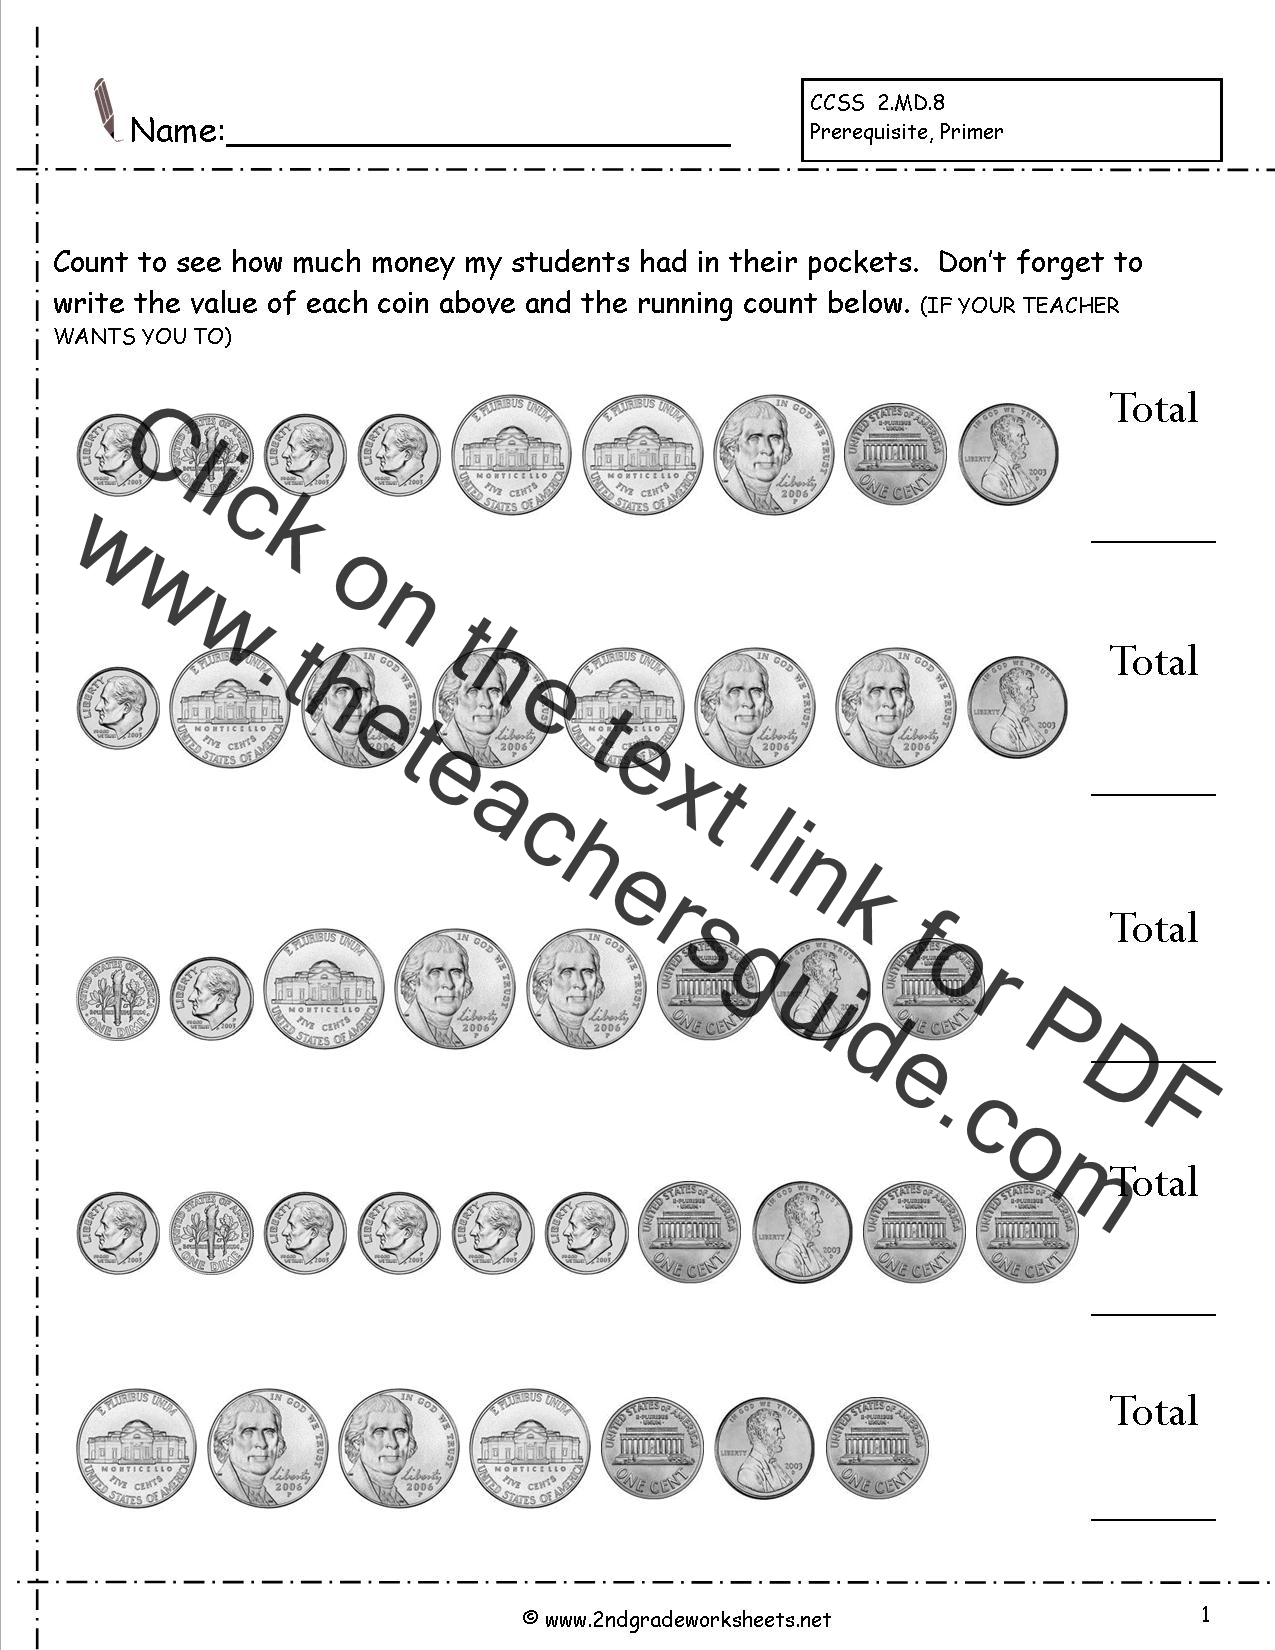 Printables Counting Coins Worksheets 2nd Grade counting coins and money worksheets printouts worksheet